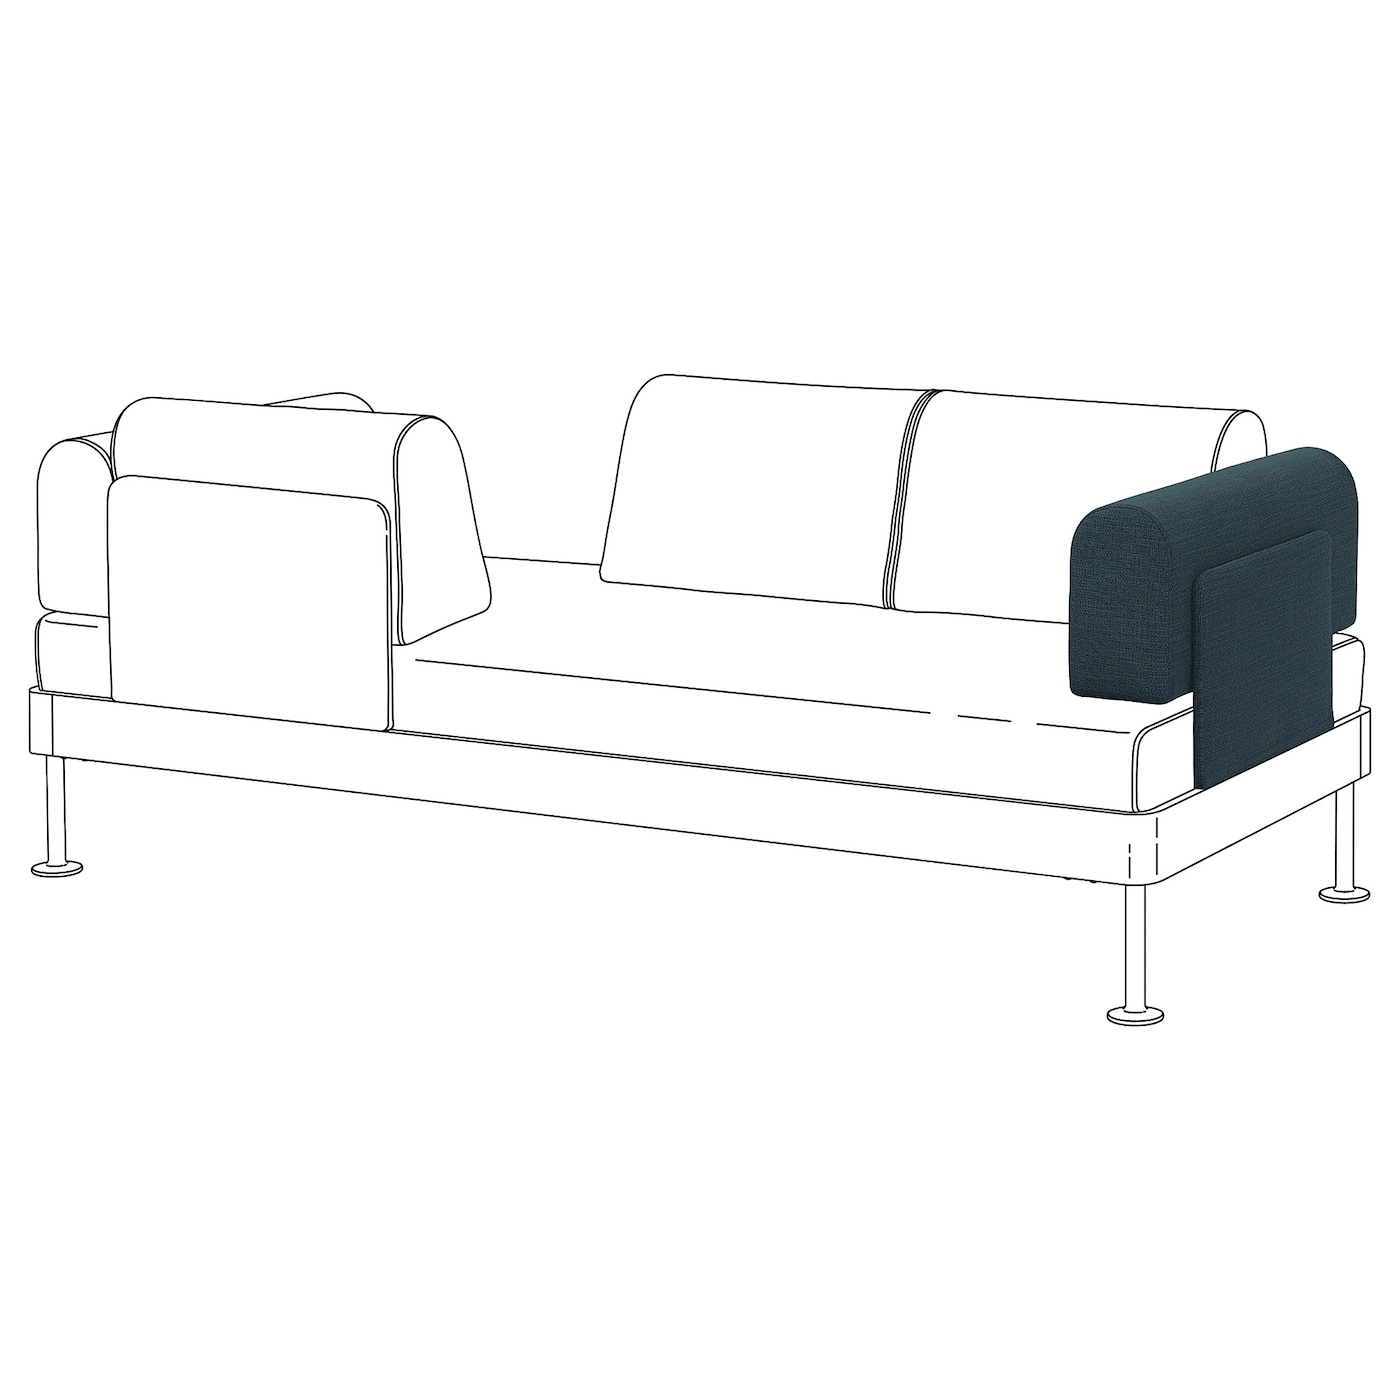 Ikea Sofa Kissenbezüge free try out of serafin modular sofa 270x168 from haapo 1910 in 3d